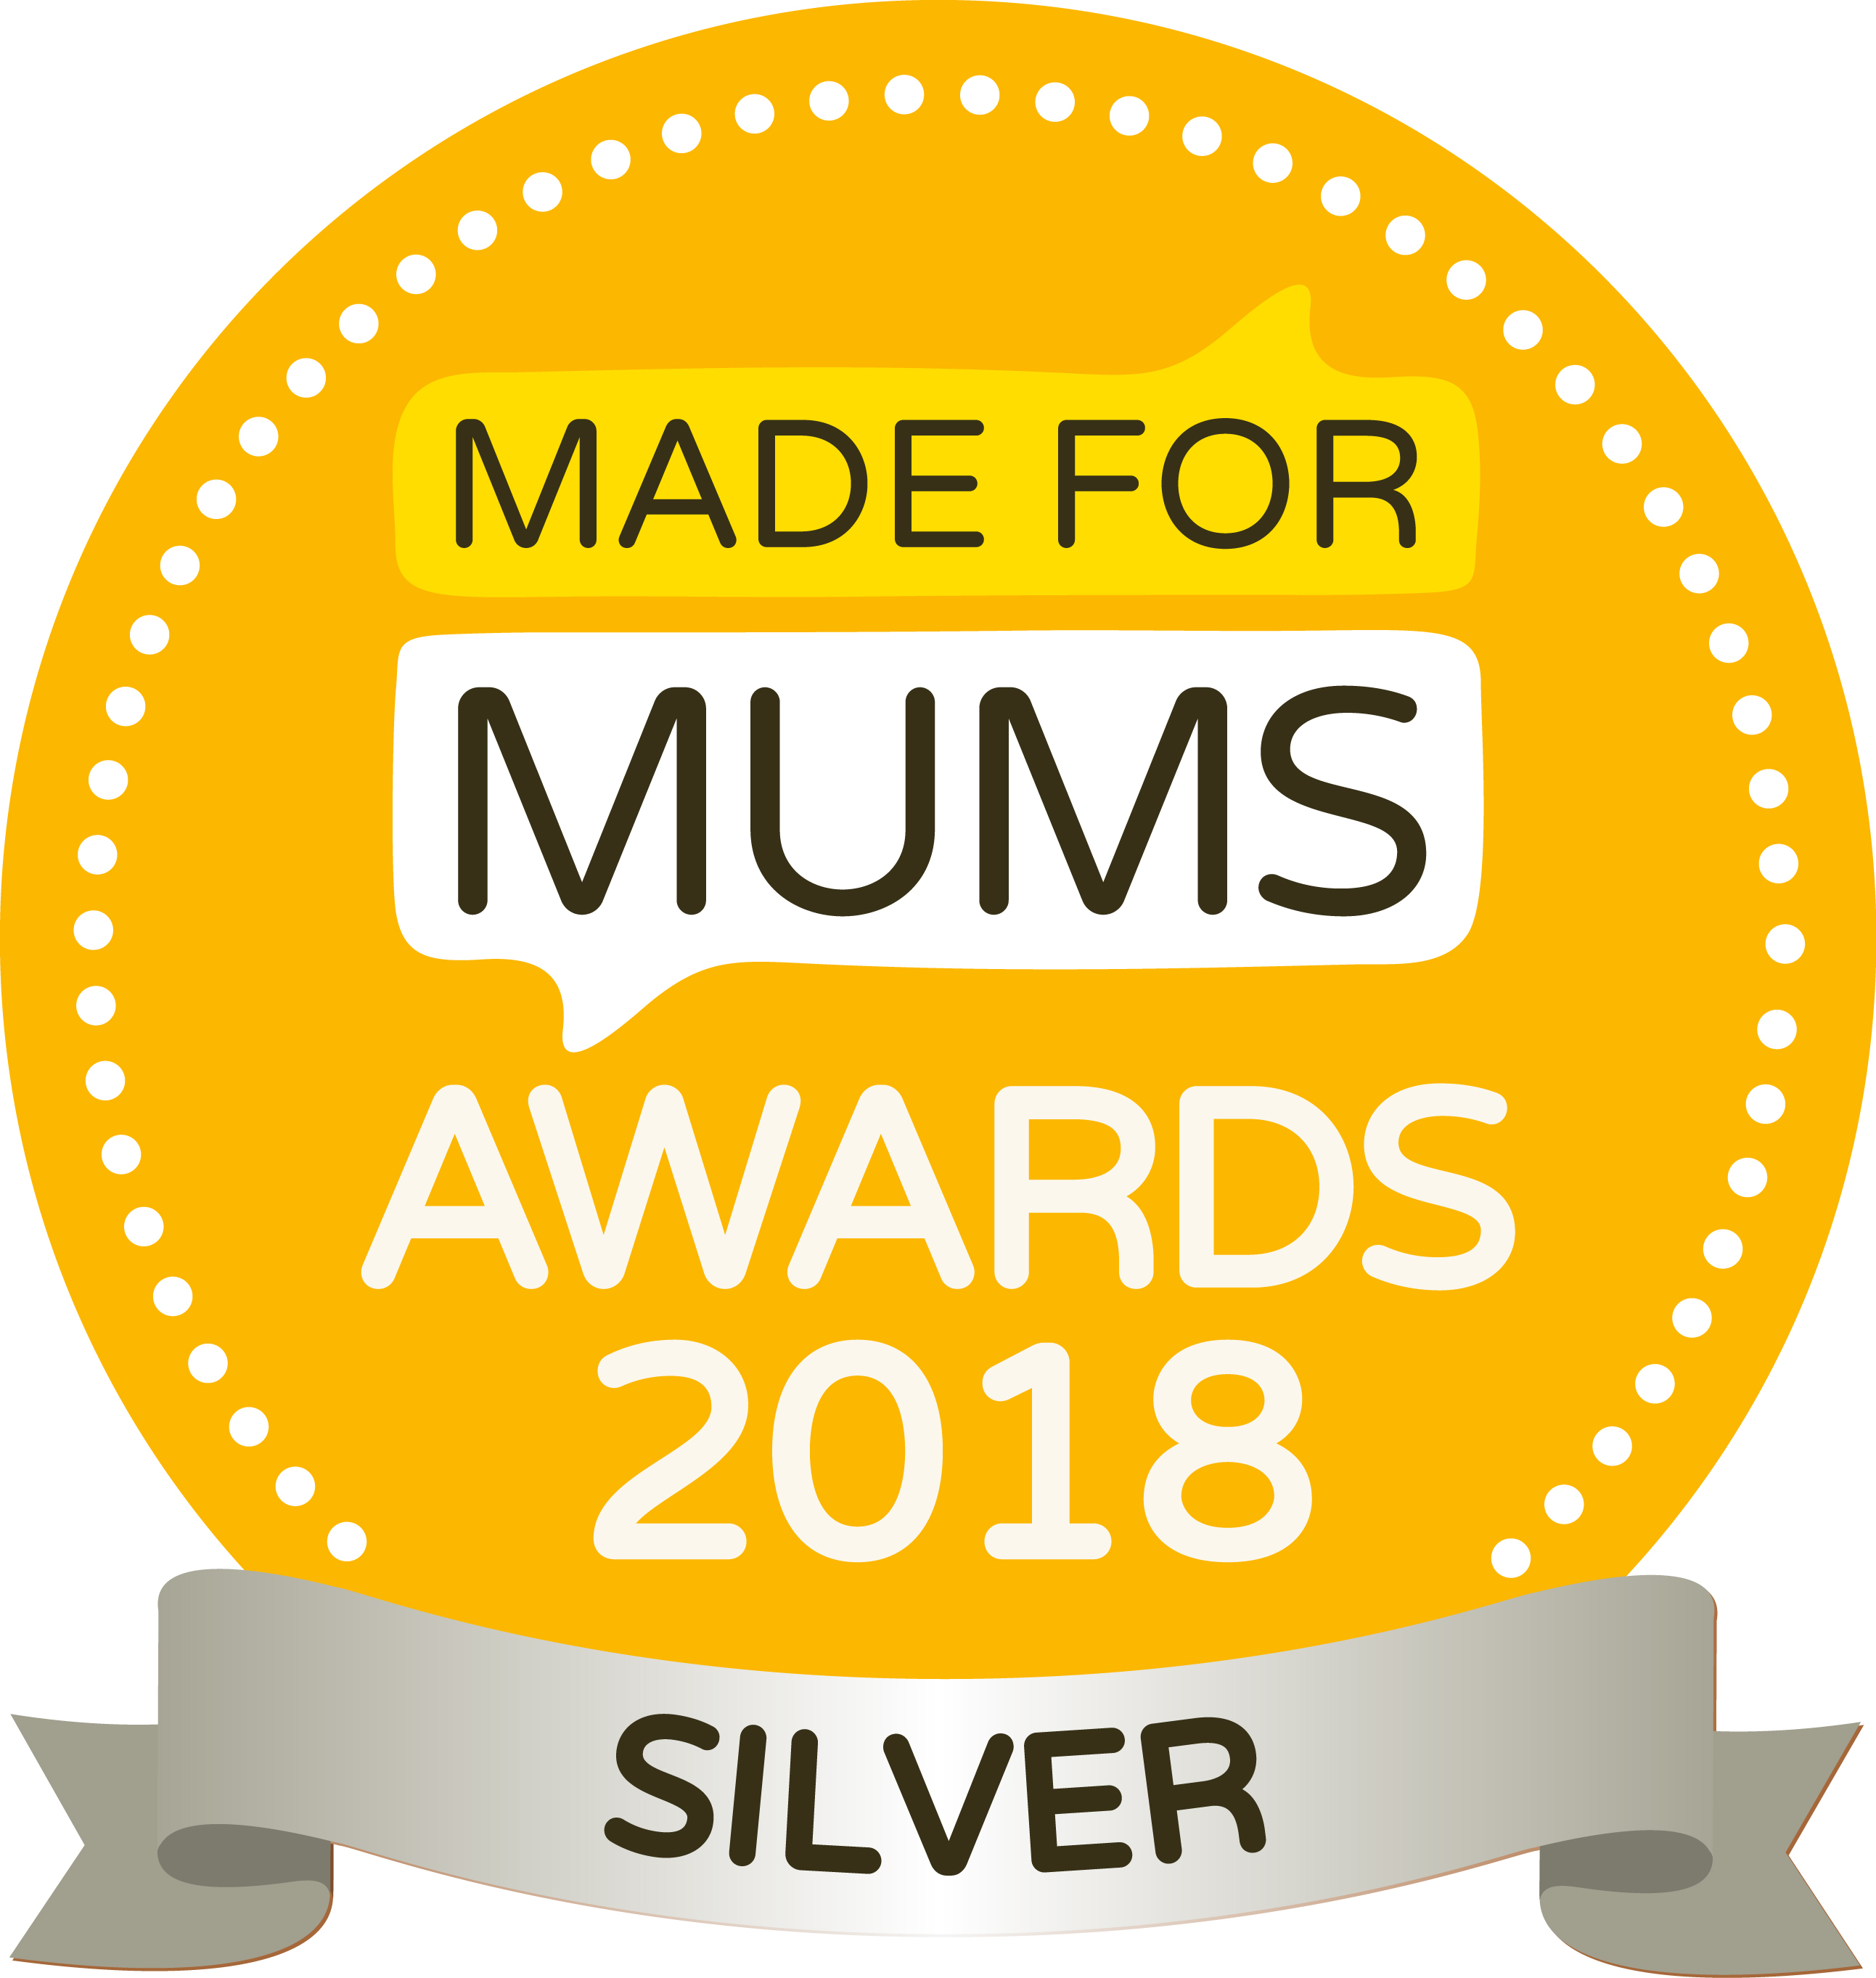 Mfm Awards Silver